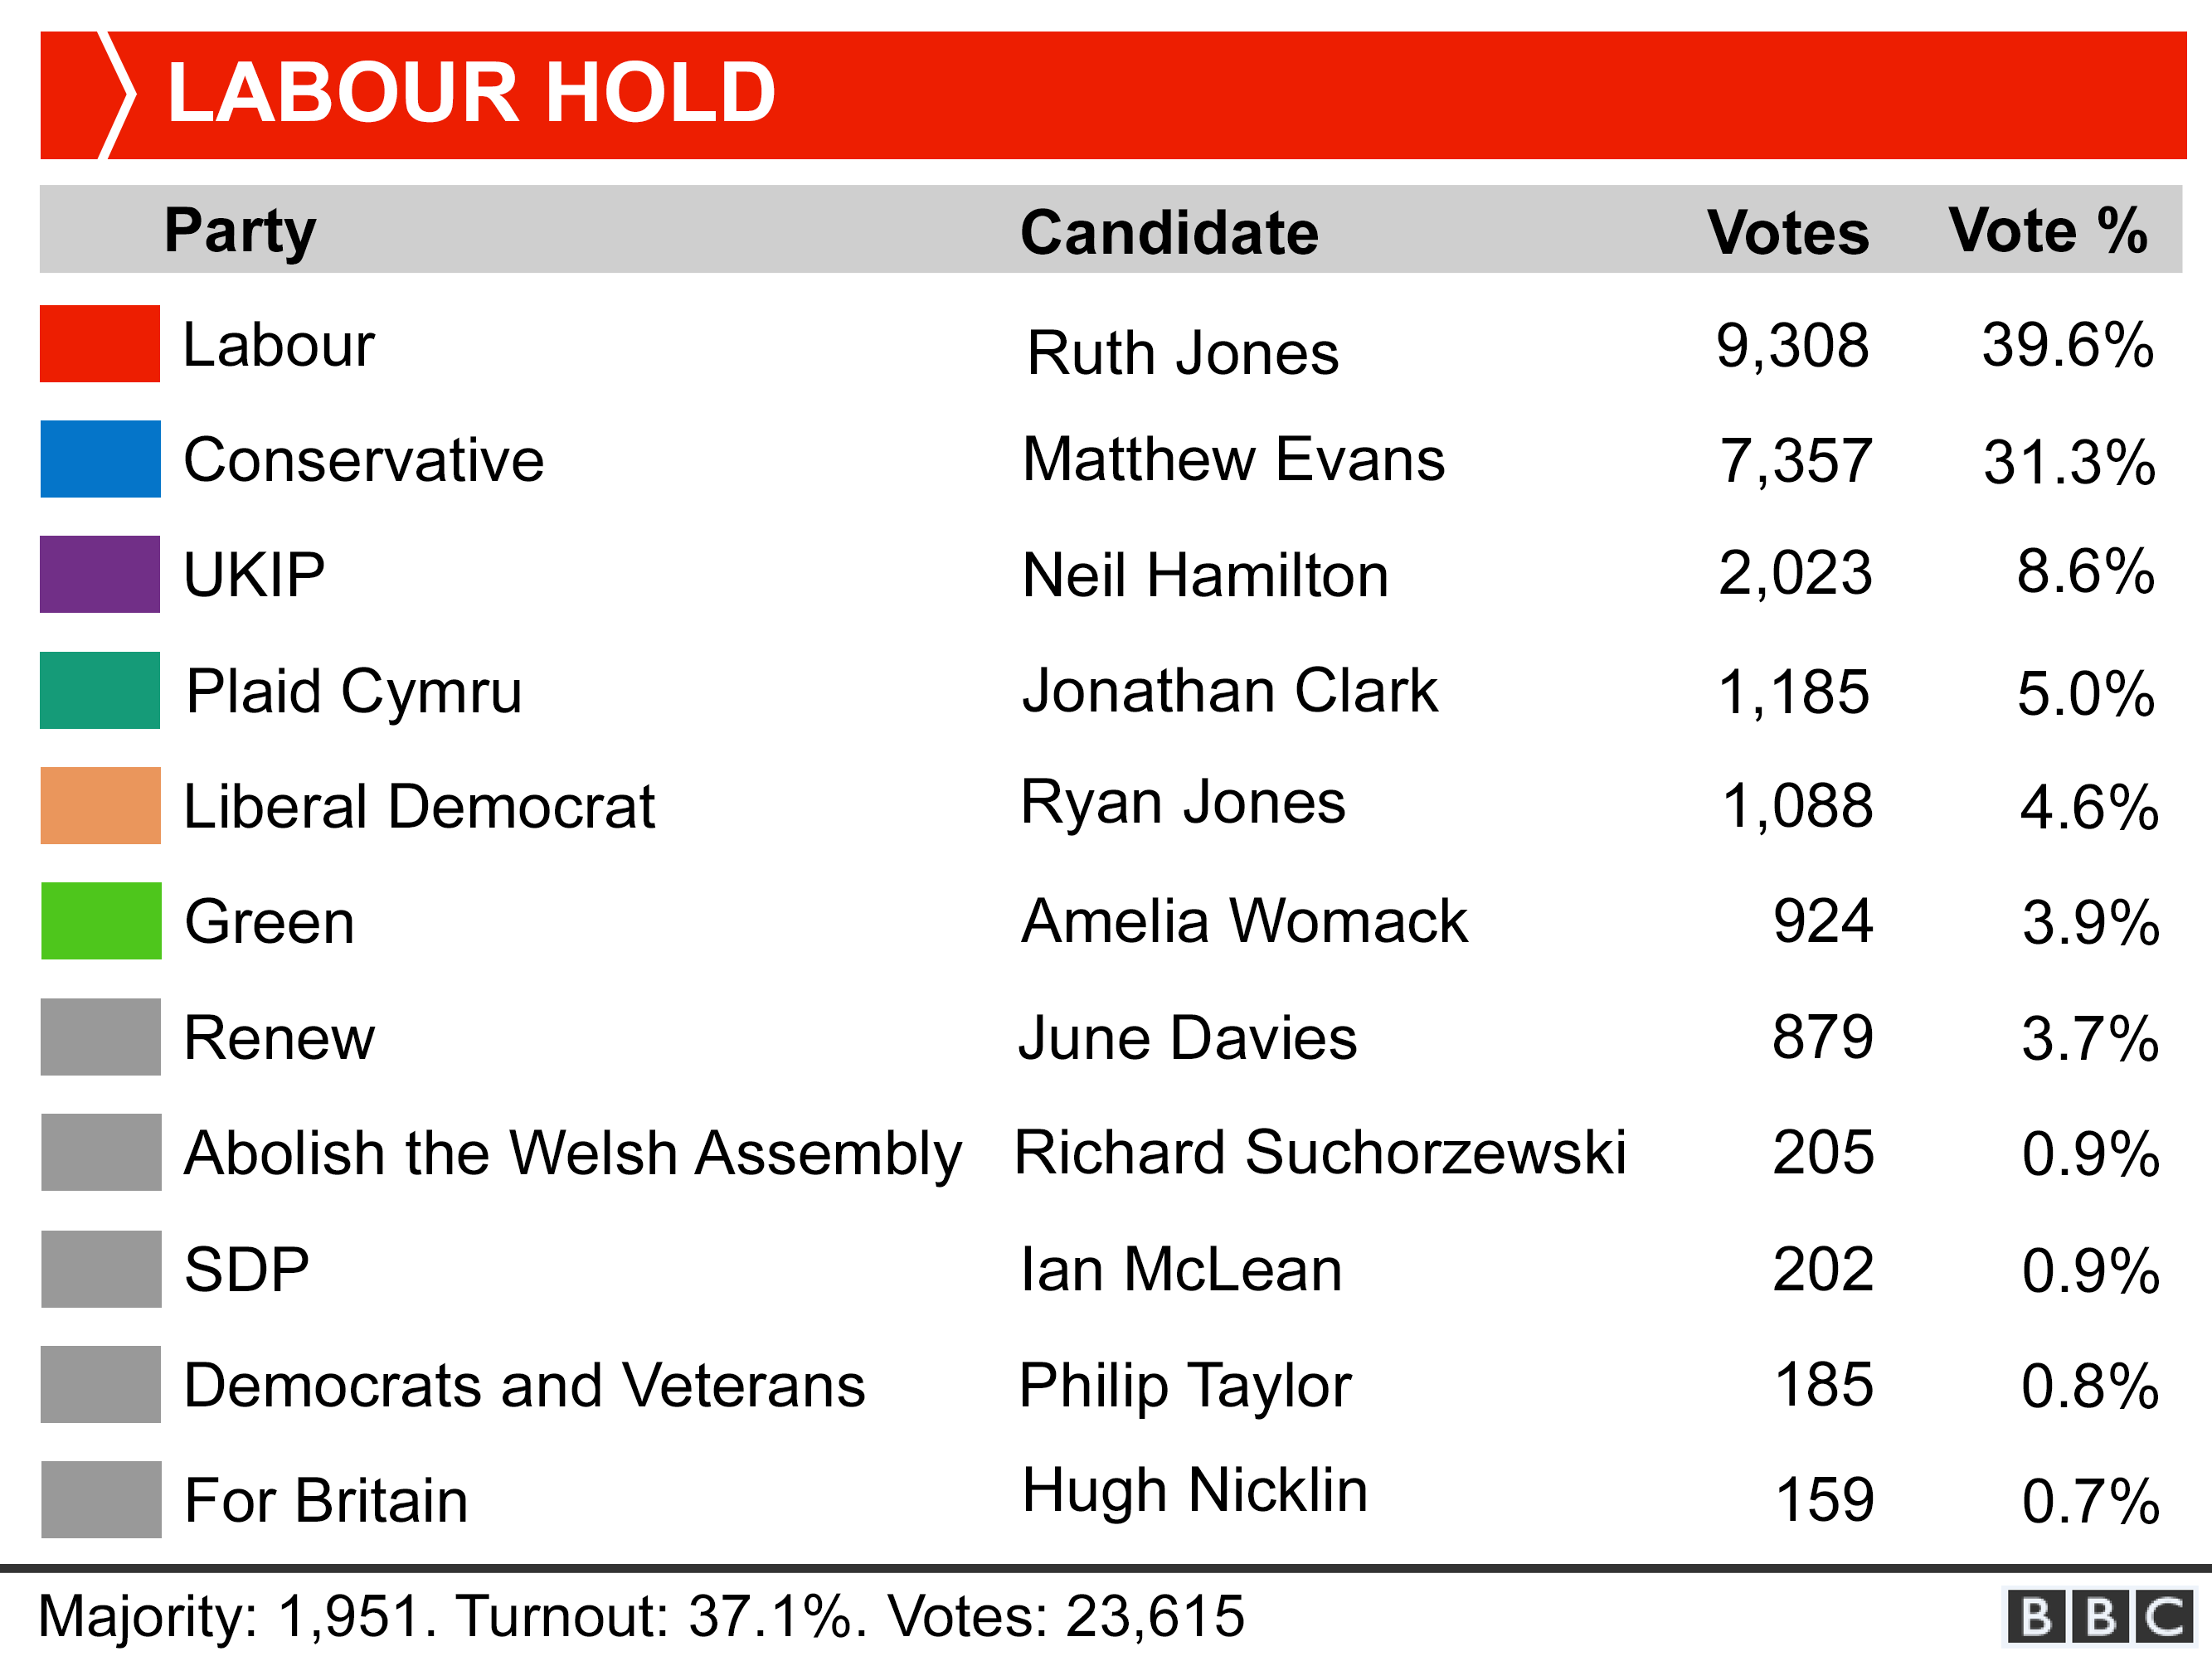 Labour candidate Ruth Jones won with 9,308 votes (39.6%). Majority 1,951. Turnout 37.1%. Votes: 23,615